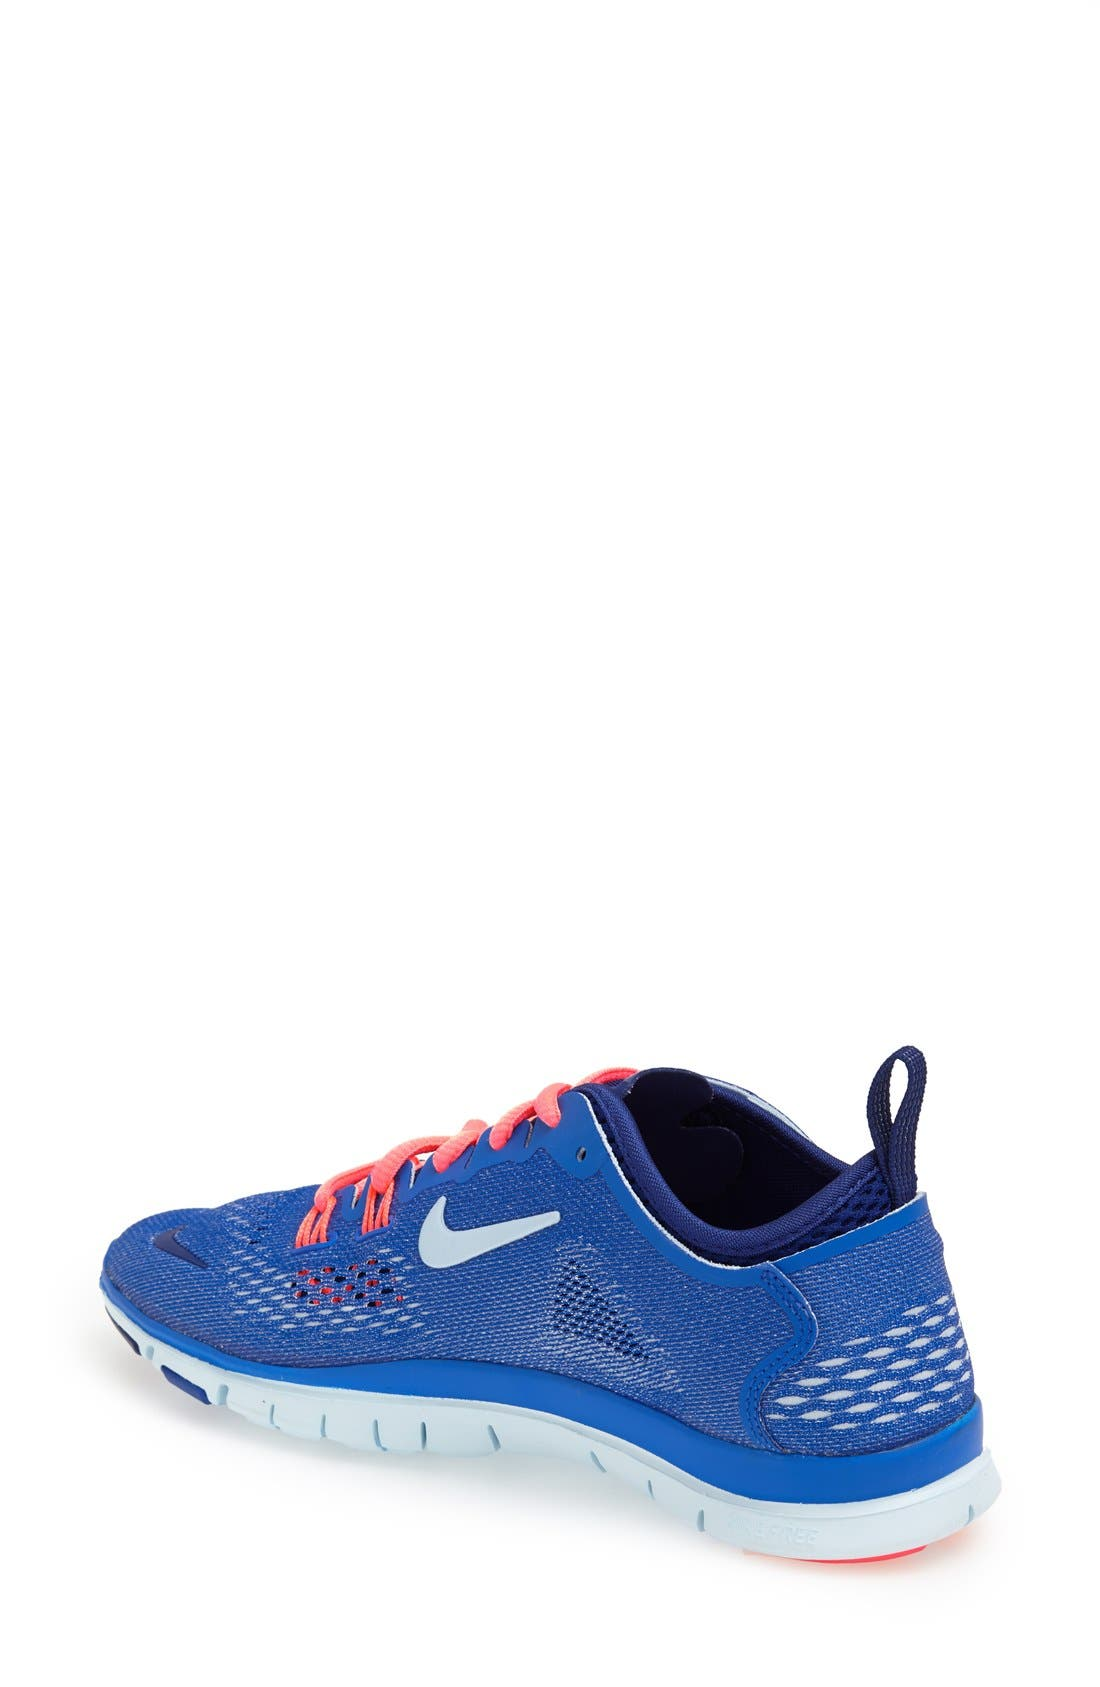 ,                             'Free 5.0 TR Fit 4' Training Shoe,                             Alternate thumbnail 59, color,                             401